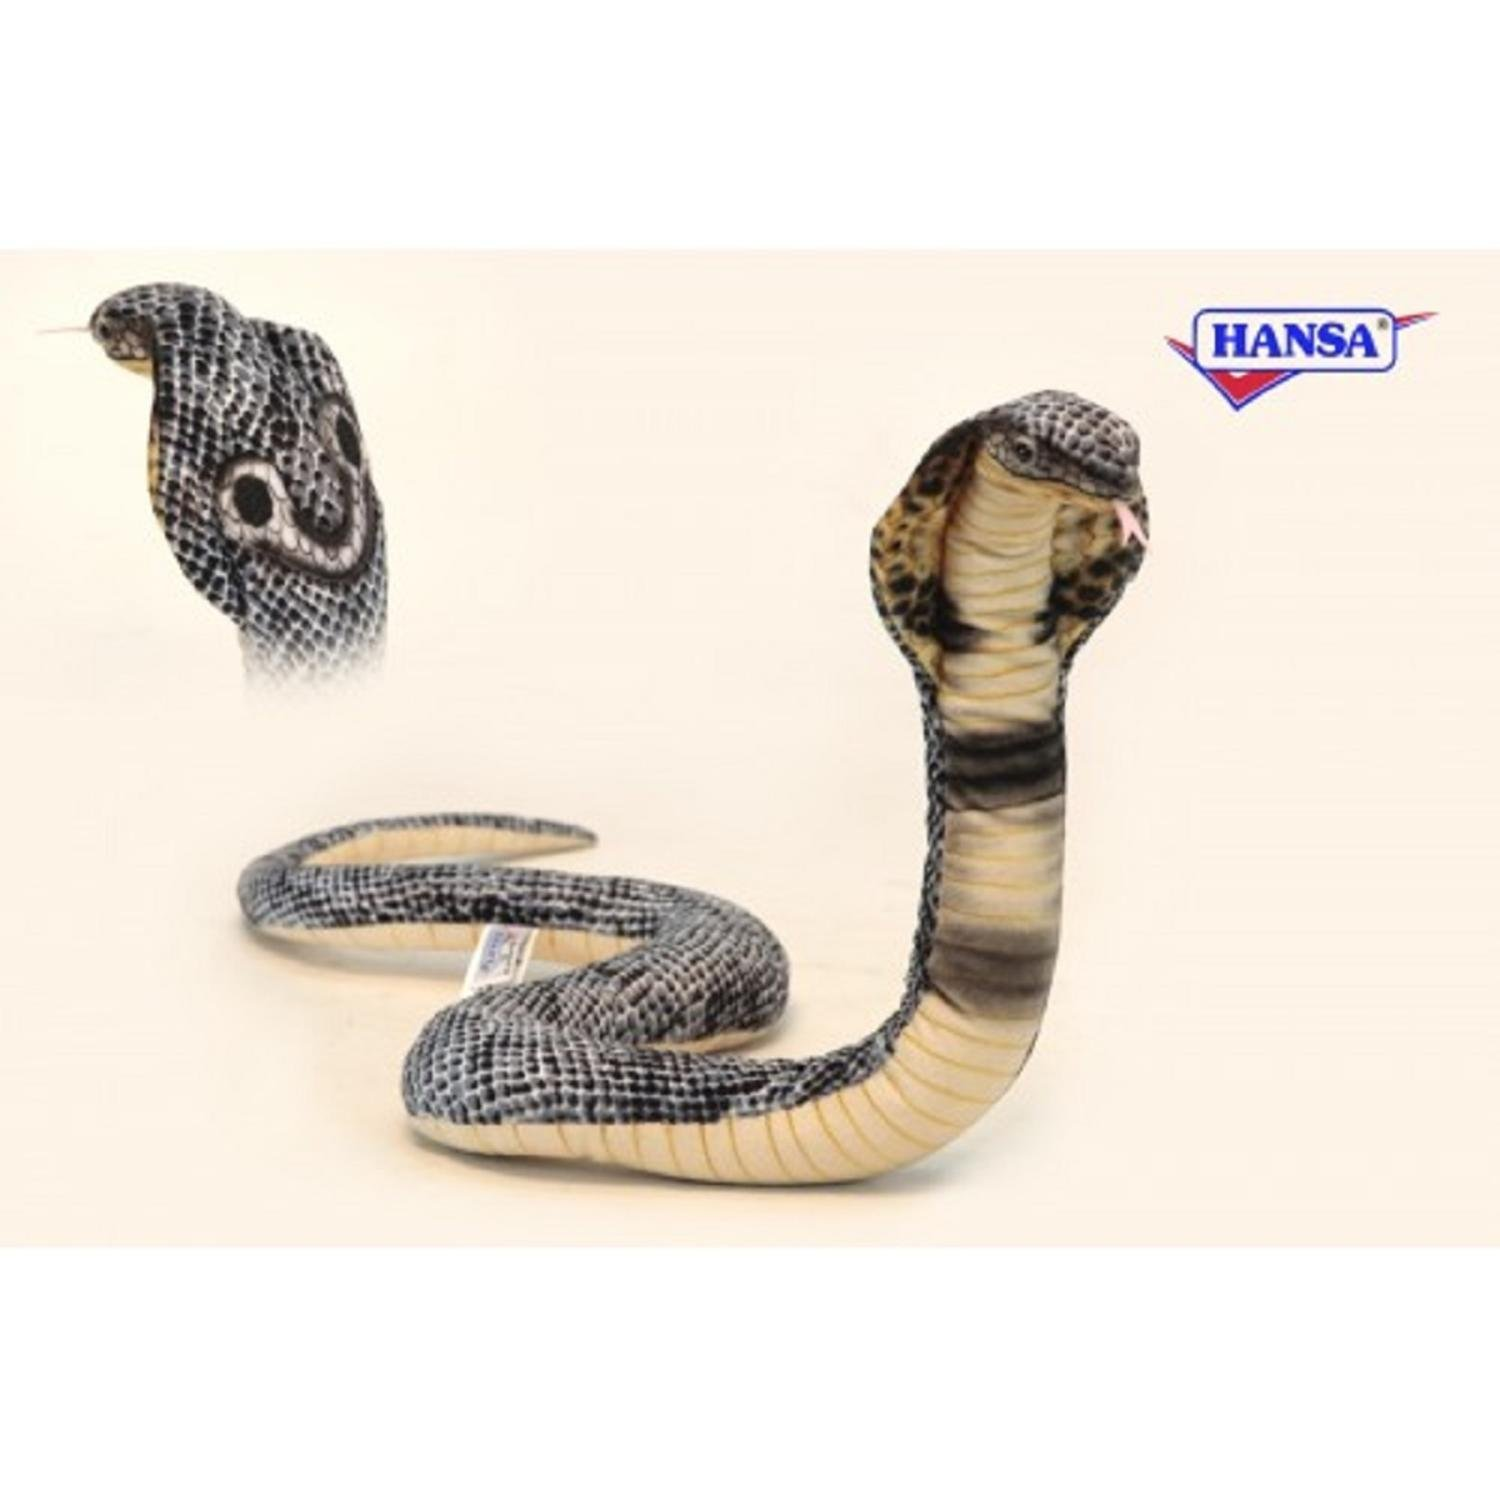 Pack of 3 LifeLike Handcrafted Extra Soft Plush Curled Cobra Stuffed Animals 33.5